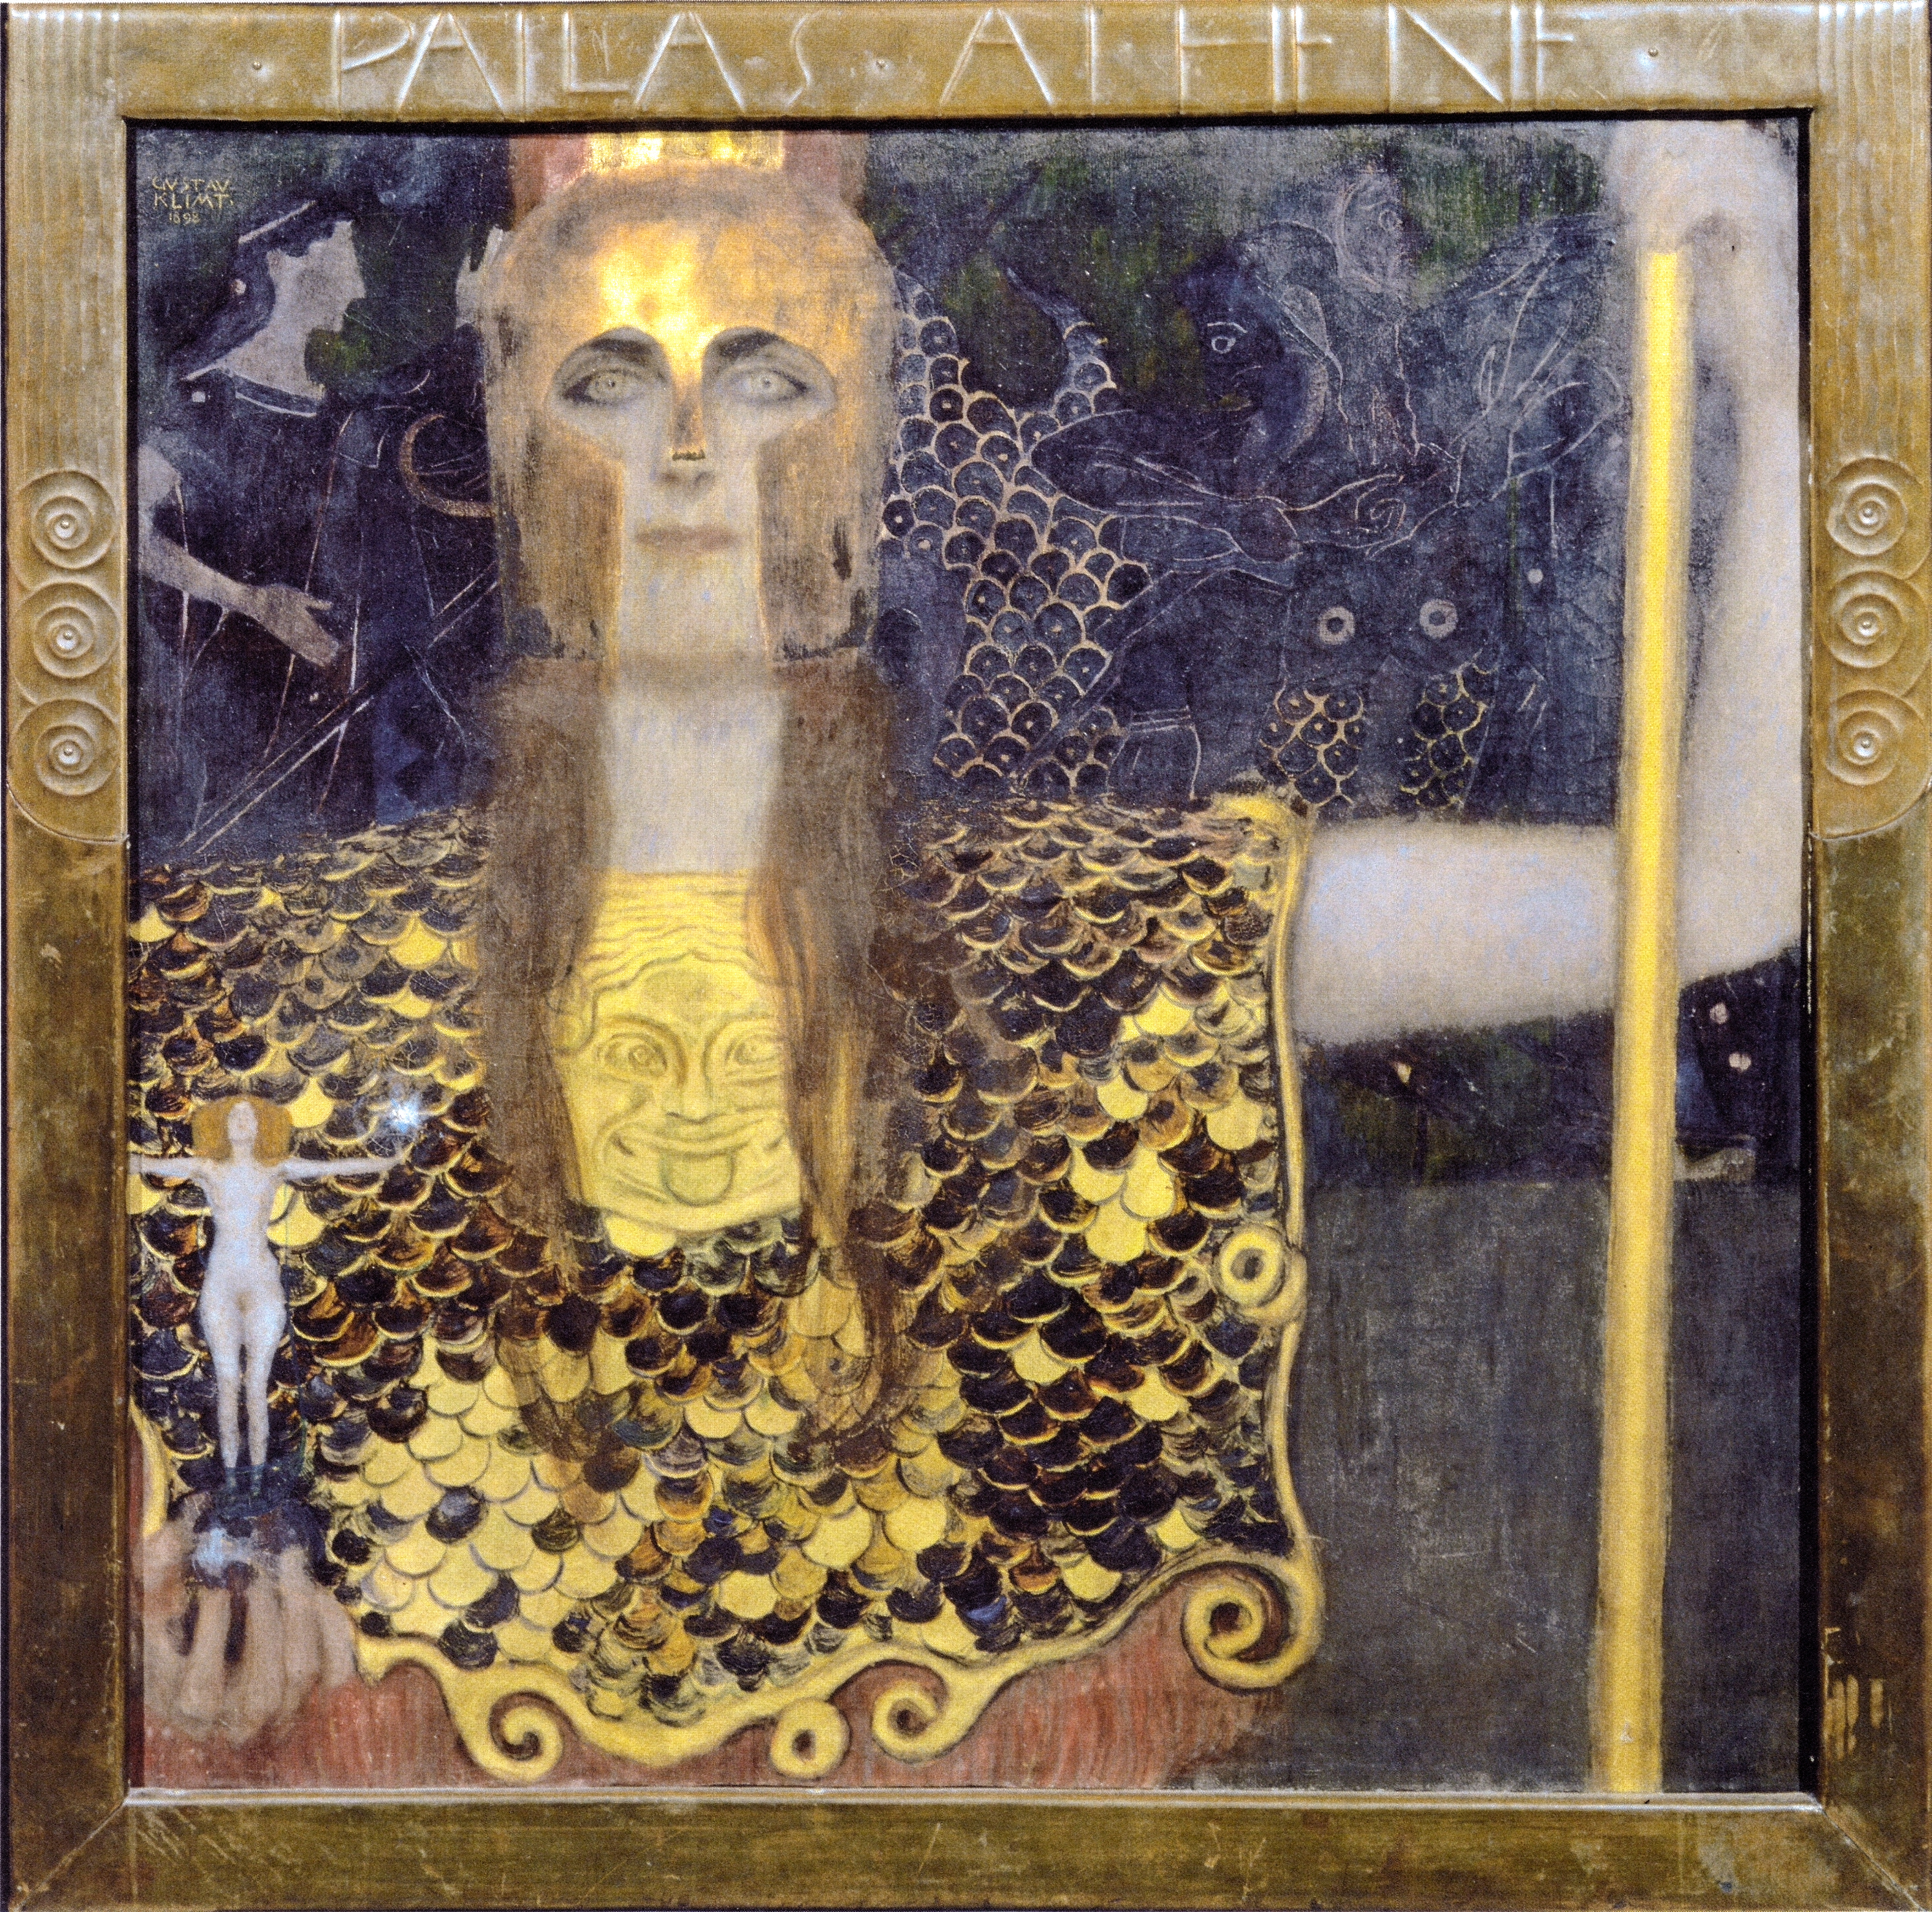 pallas athena painting - photo #16